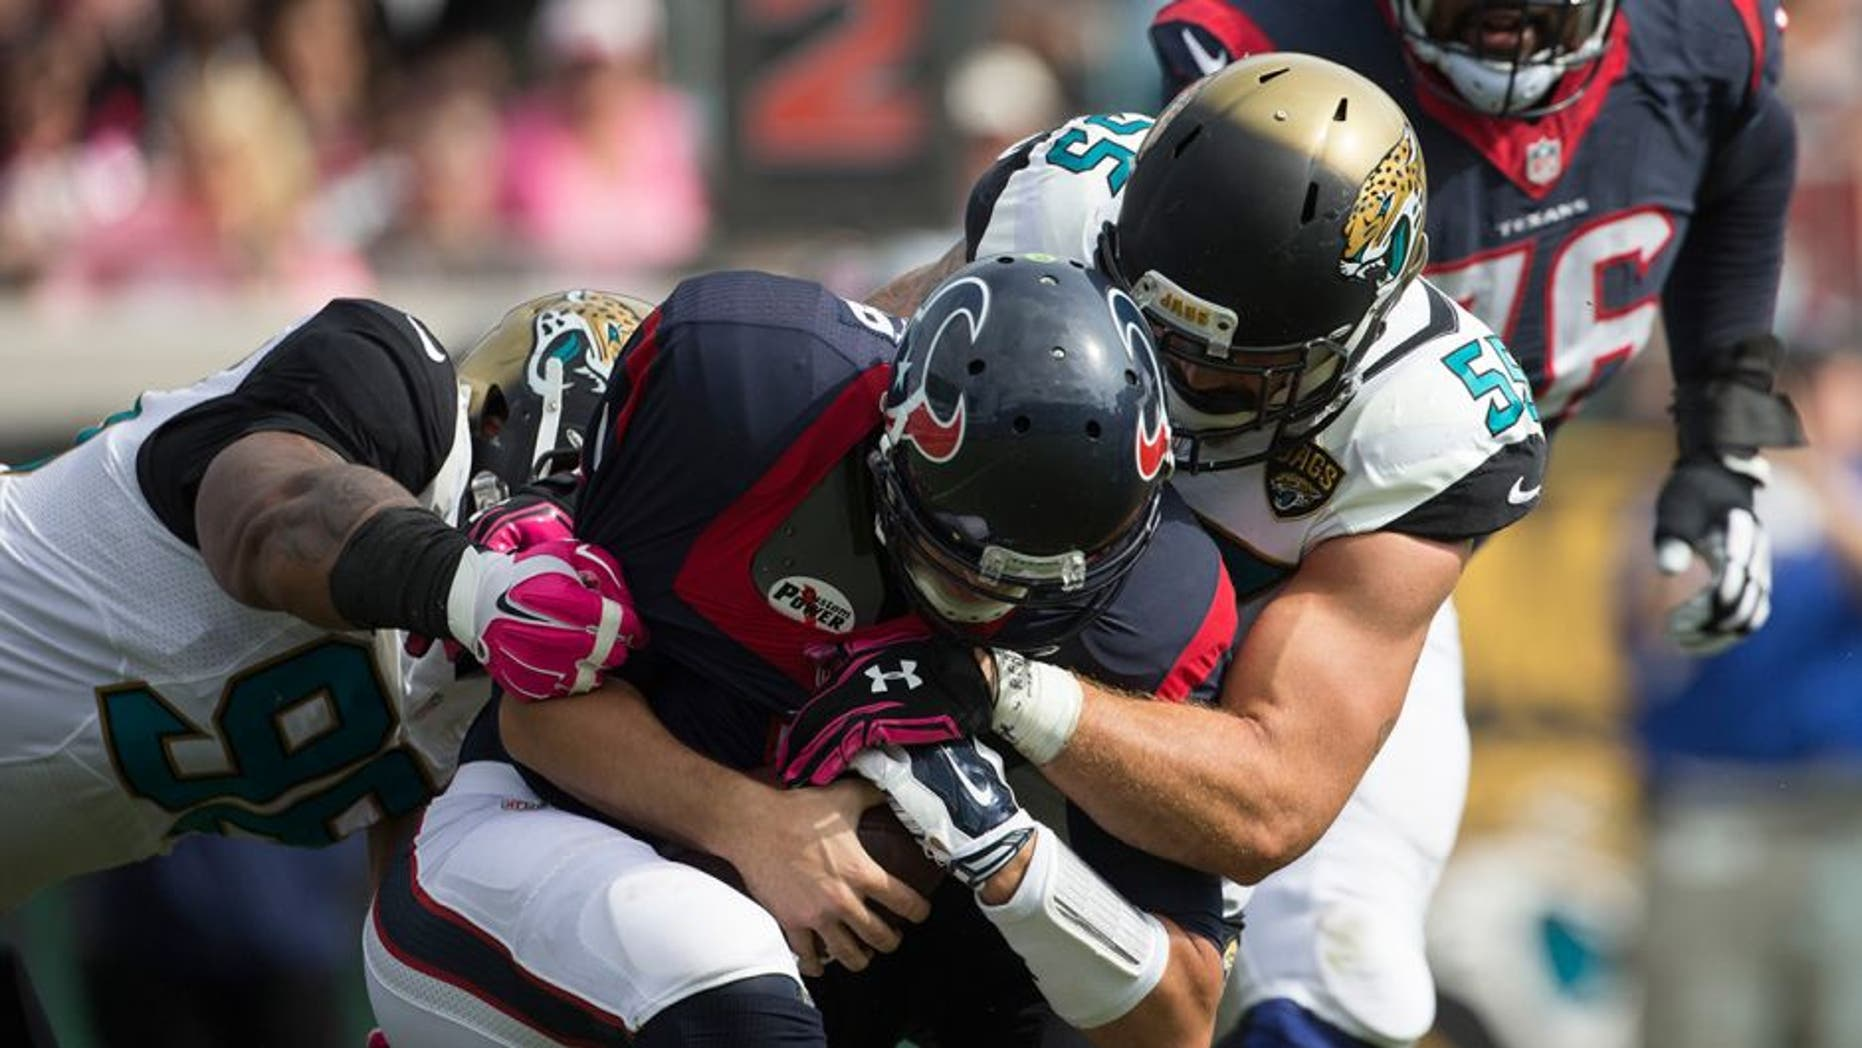 Oct 18, 2015; Jacksonville, FL, USA; Jacksonville Jaguars defensive tackle Roy Miller (97) and Jacksonville Jaguars outside linebacker Dan Skuta (55) sack Houston Texans quarterback Brian Hoyer (7) during the third quarter at EverBank Field. The Houston Texans won 31-20. Mandatory Credit: Logan Bowles-USA TODAY Sports